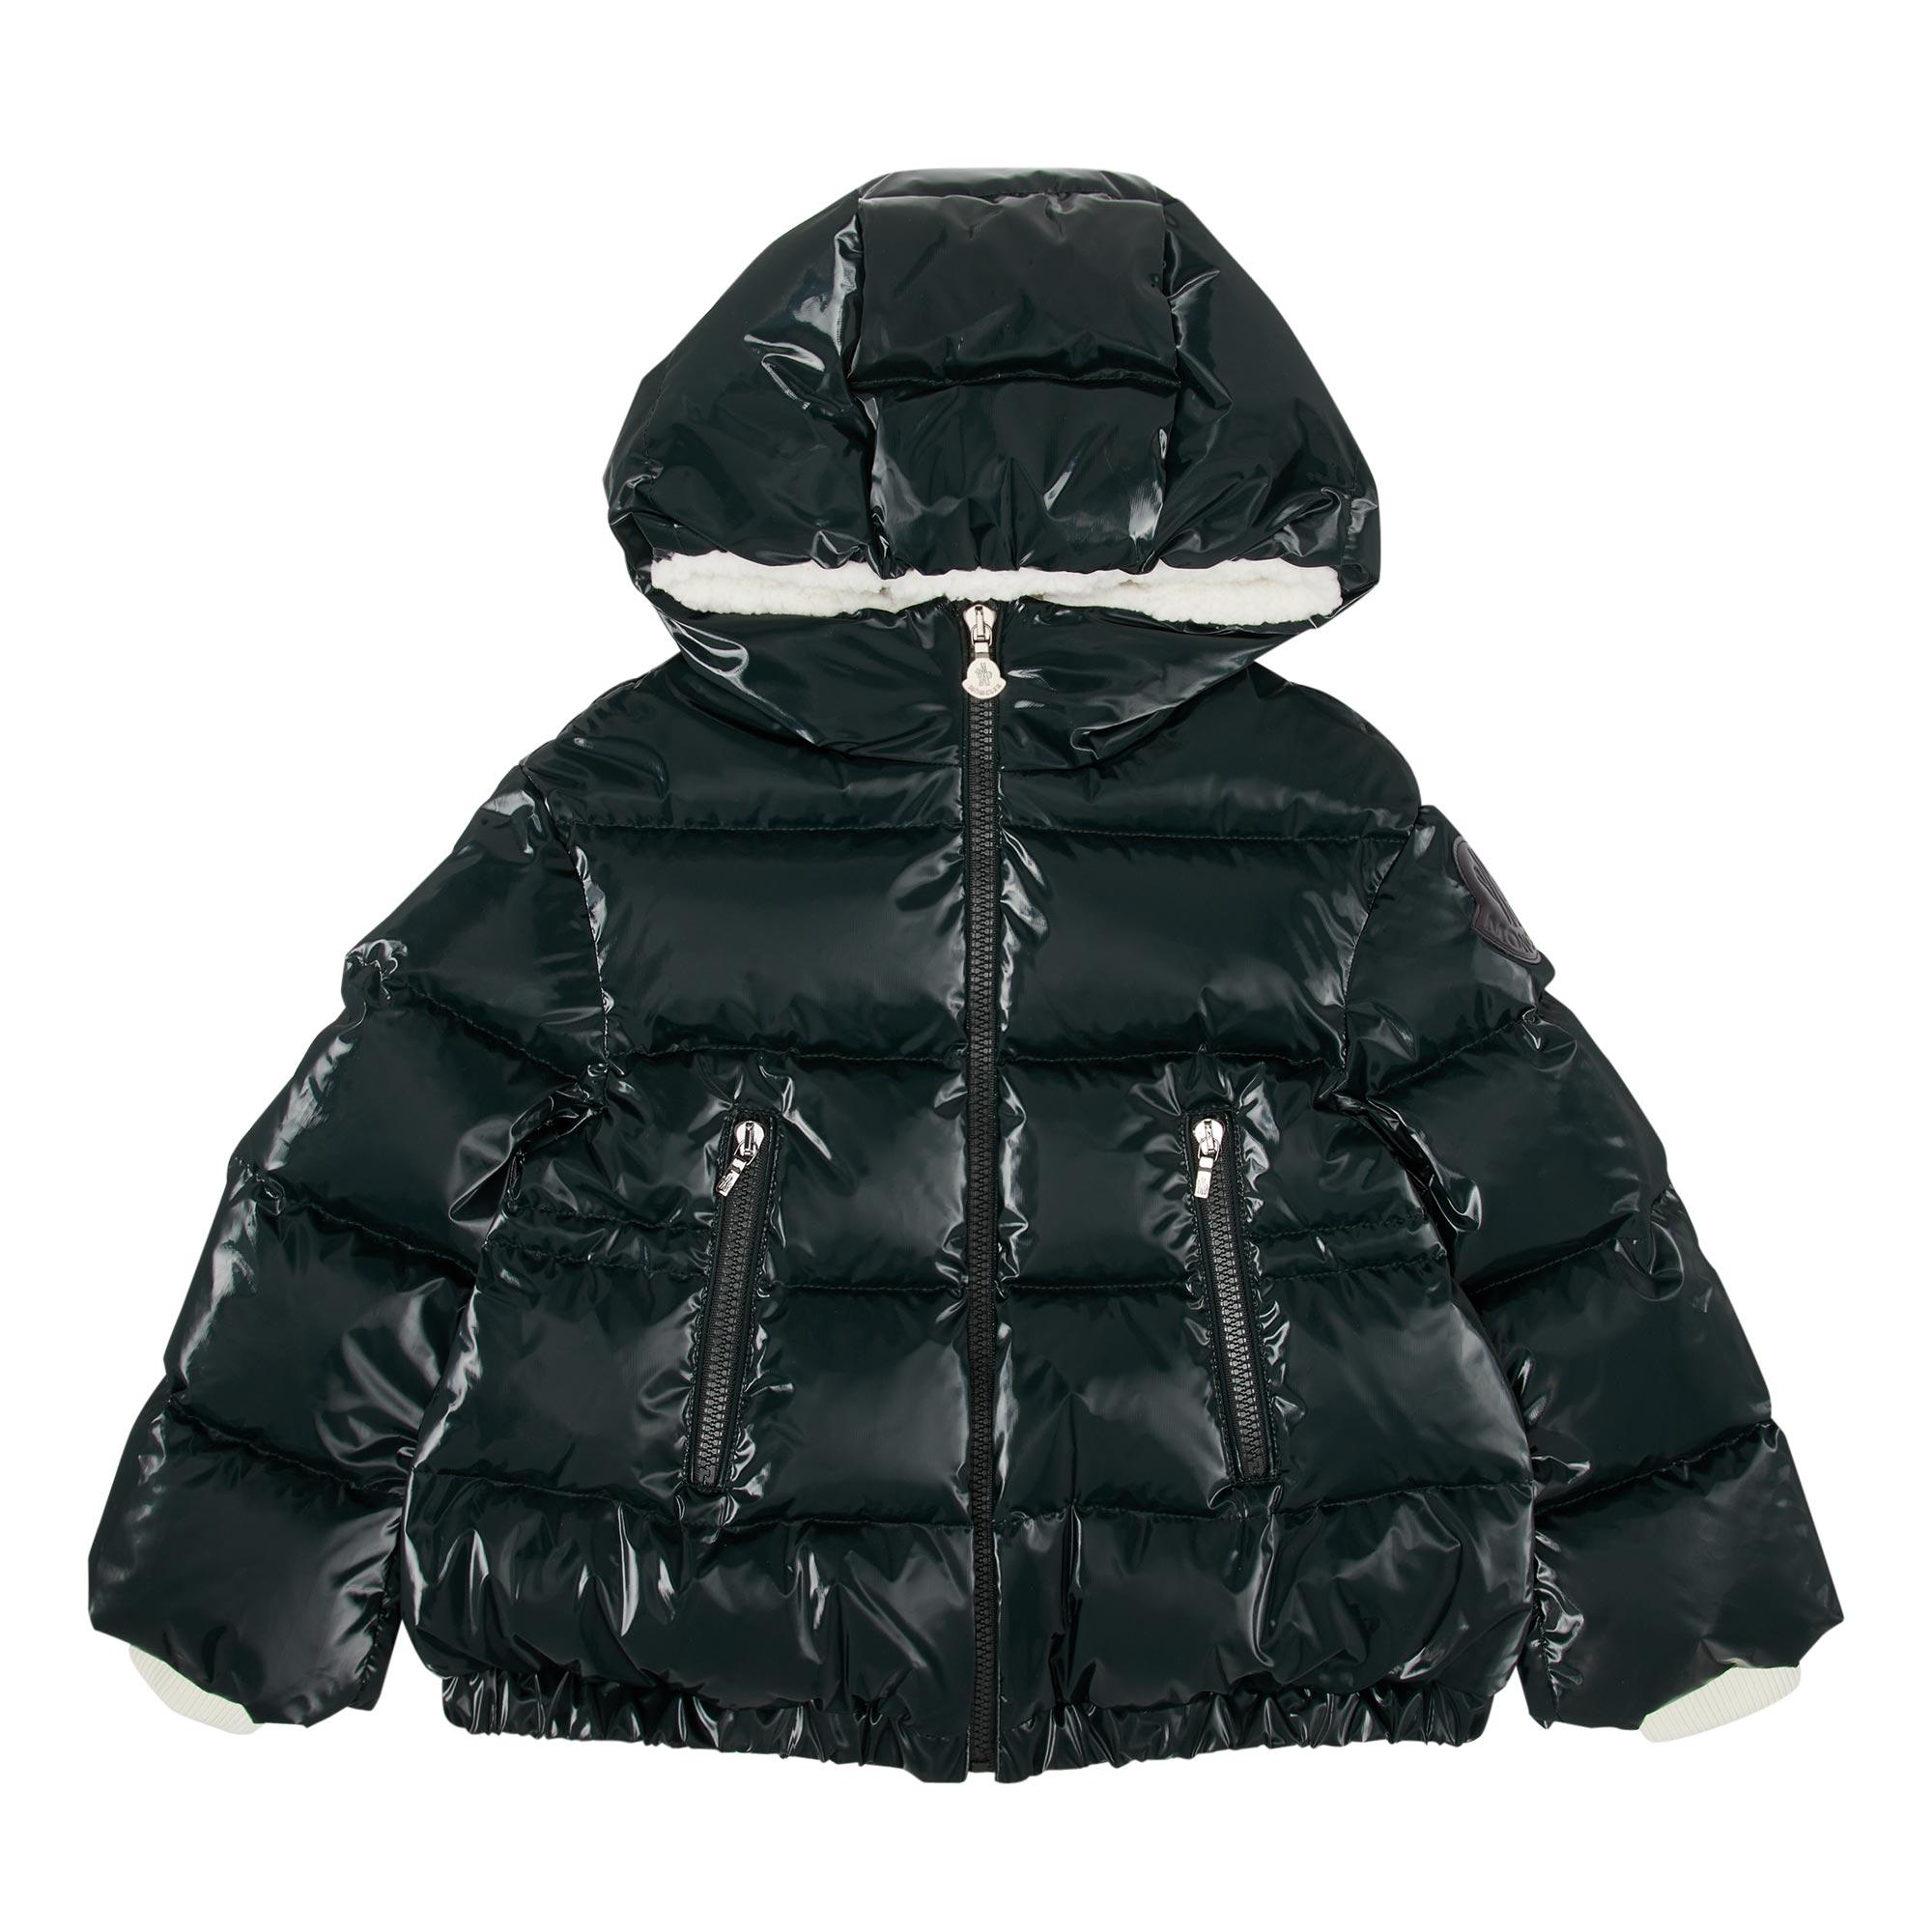 Clentra Glossy Puffer Coat